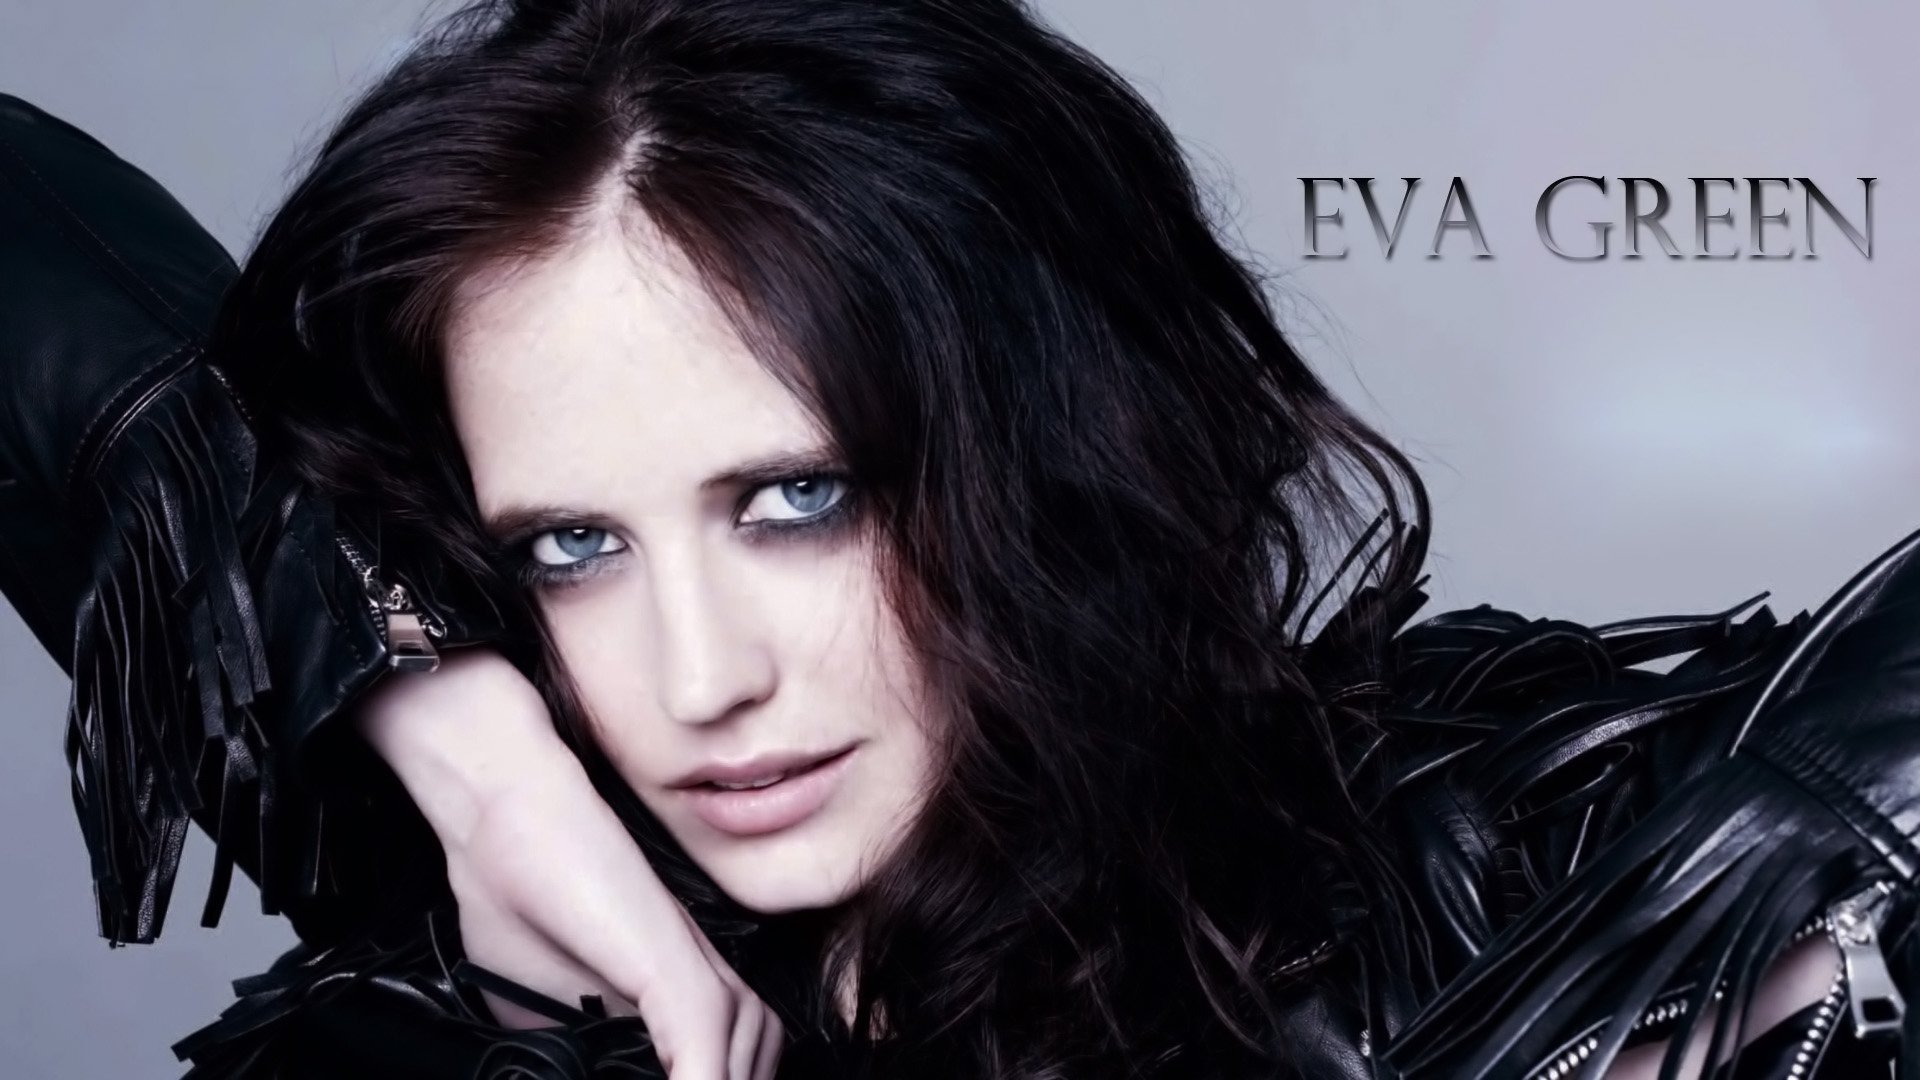 Eva Green Wallpaper HD